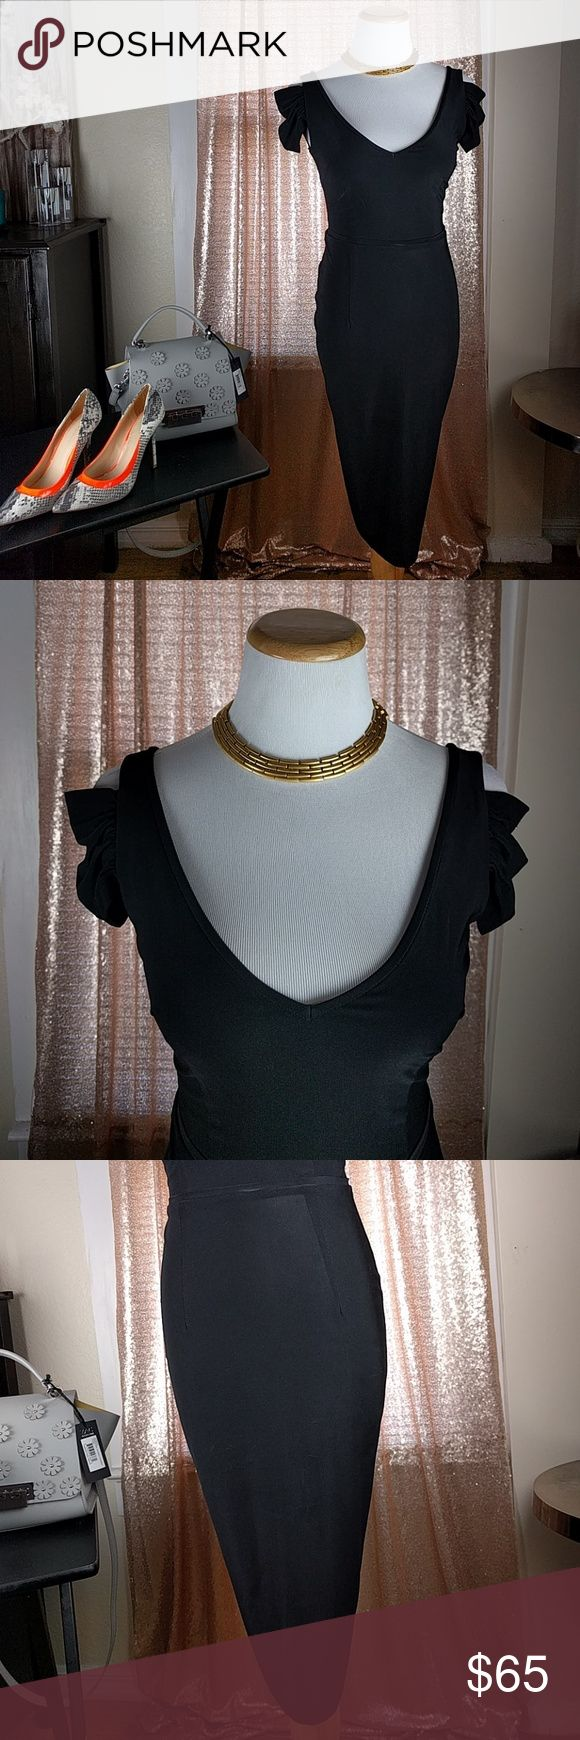 """Little Black Dress Off the Shoulder Sleeves NWT Leona Edmiston Little Black Dress Off the Shoulder Sleeves SZ2 $298 (E01) •Fitted  •Off the shoulder sleeve •Ruching on back •95% polyester, 5% spandex •Tag says SZ 2 but it appears to me more like XXS - XS •B: 13.25"""" (underarm to underarm for size 2) •L: 38"""" (center shoulder to hem for size 2) Measurements are an approximation – appears smaller then a 2 so I am listing as an XS Purse and shoes are also for sale Leona Edminston Dresses"""